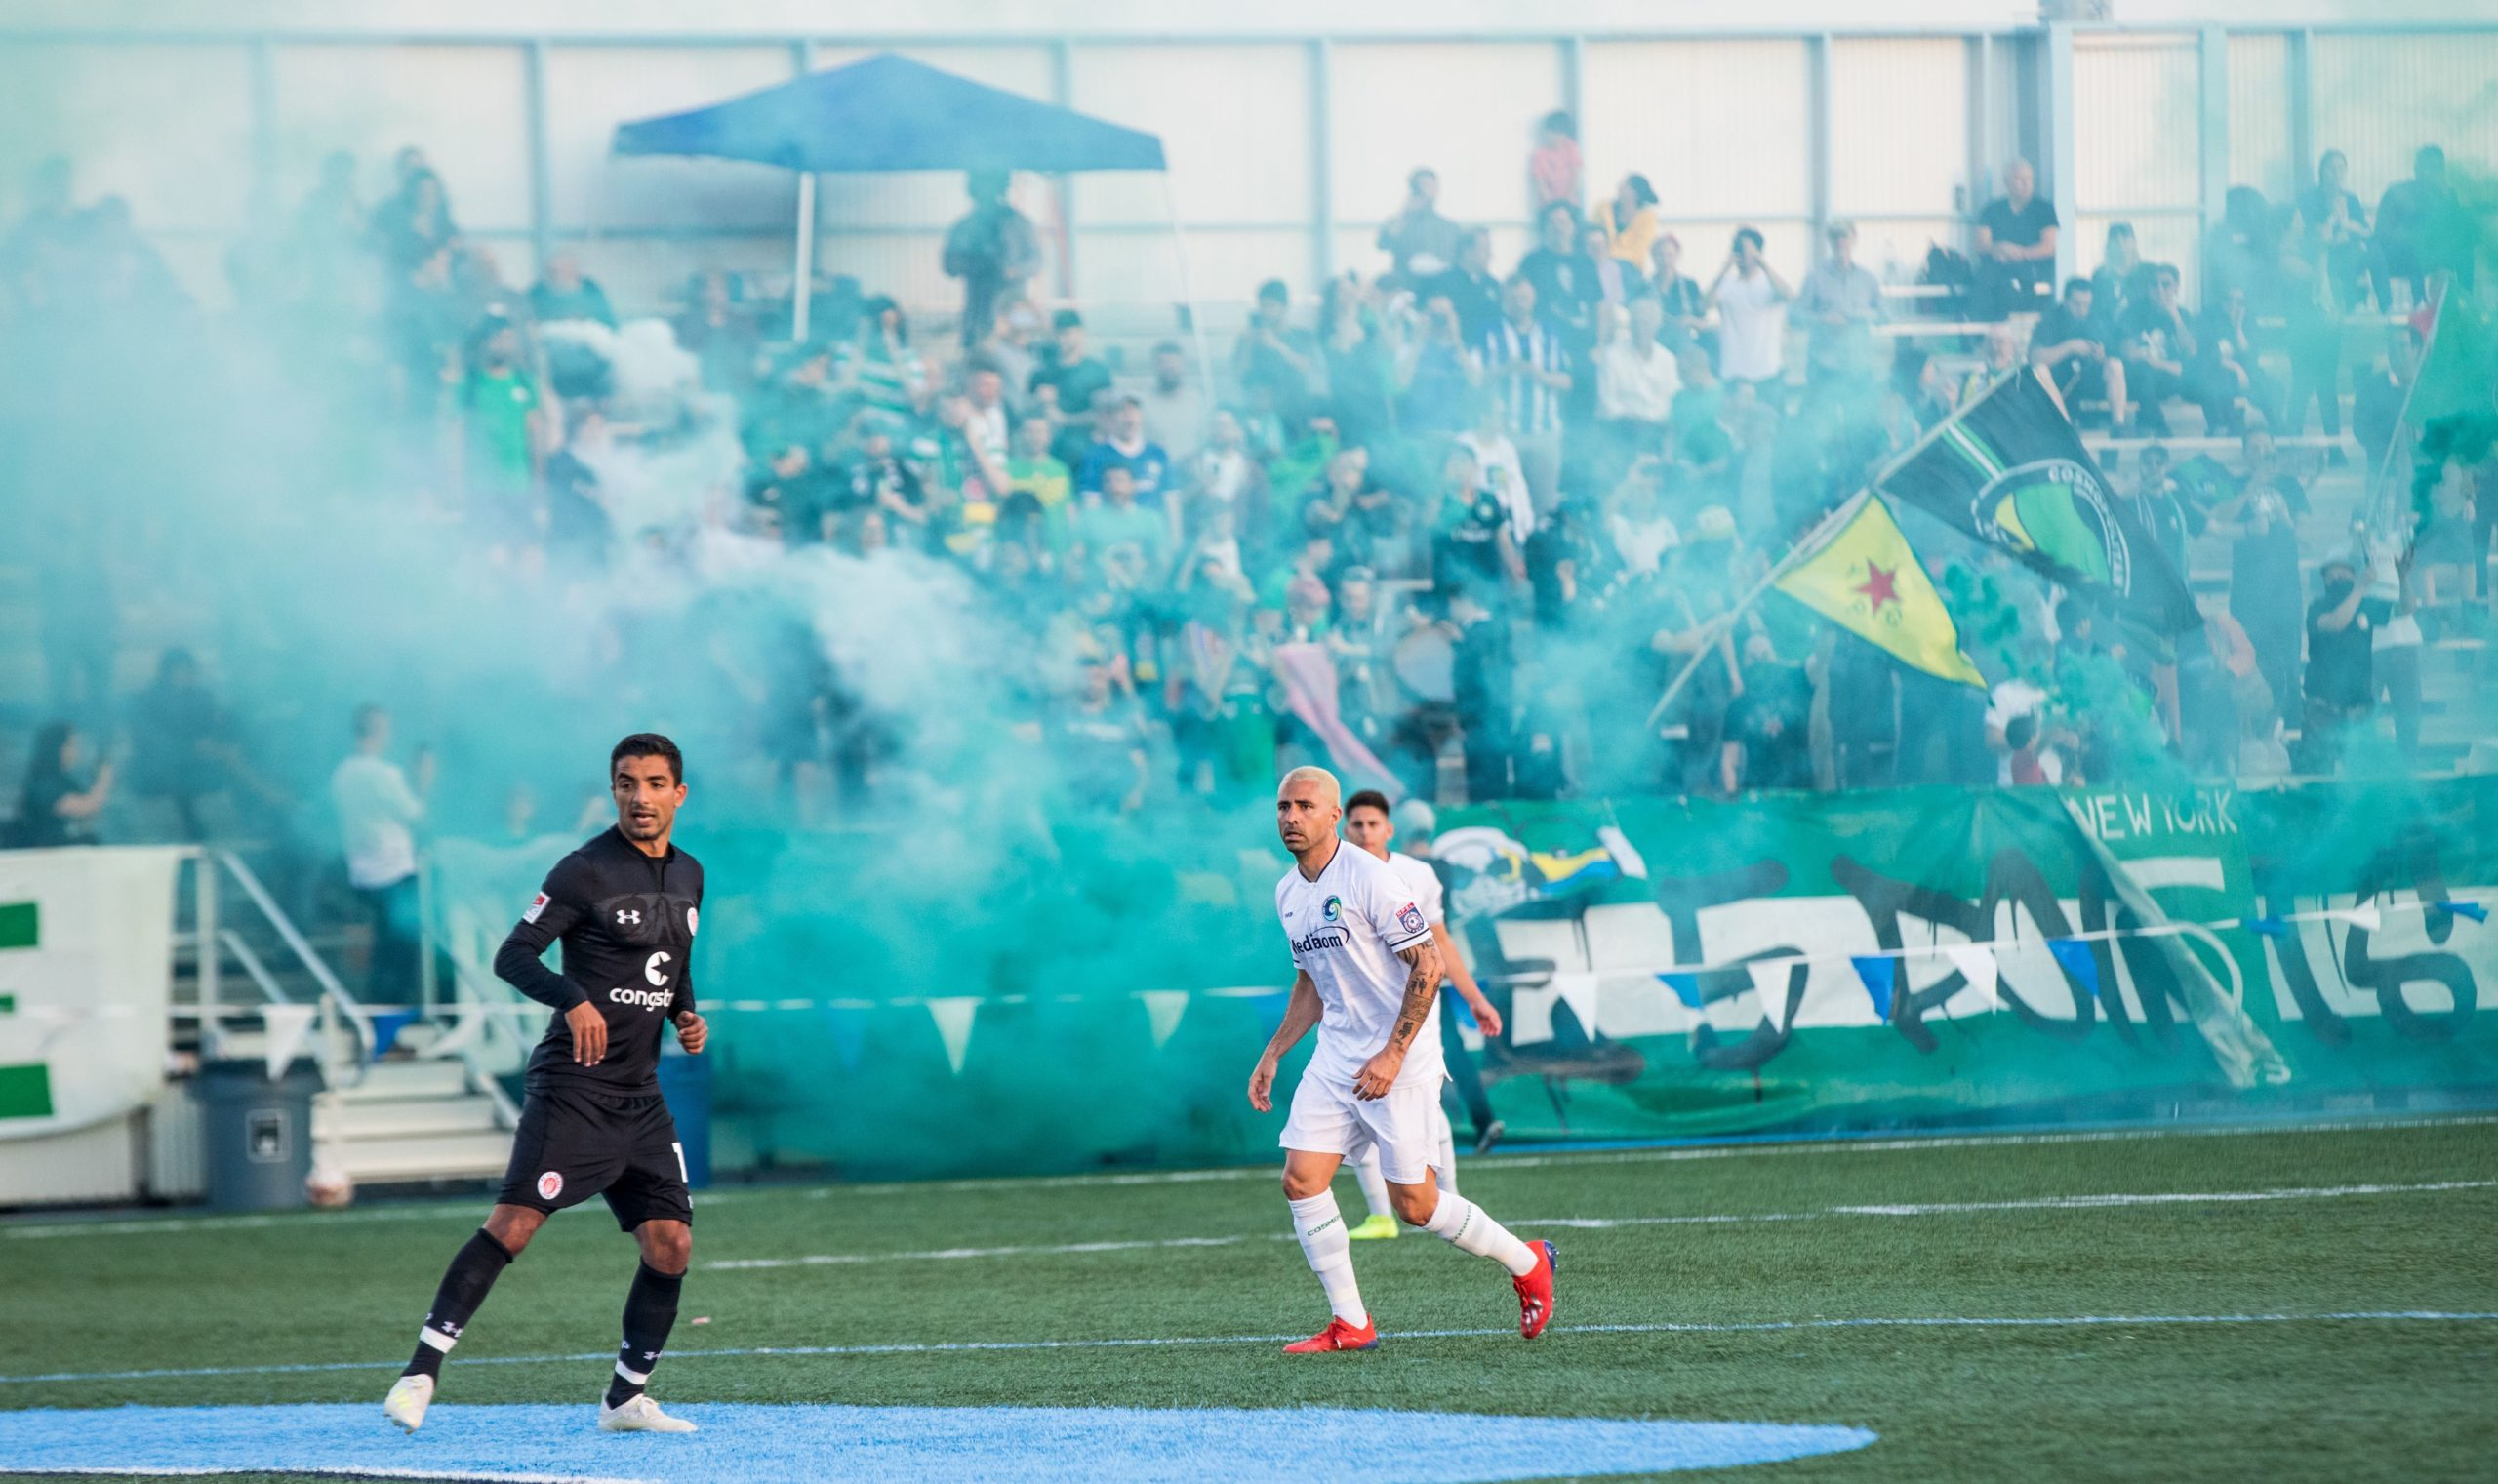 View from the field of a cosmos match with smoke and the YPG flag in the background.